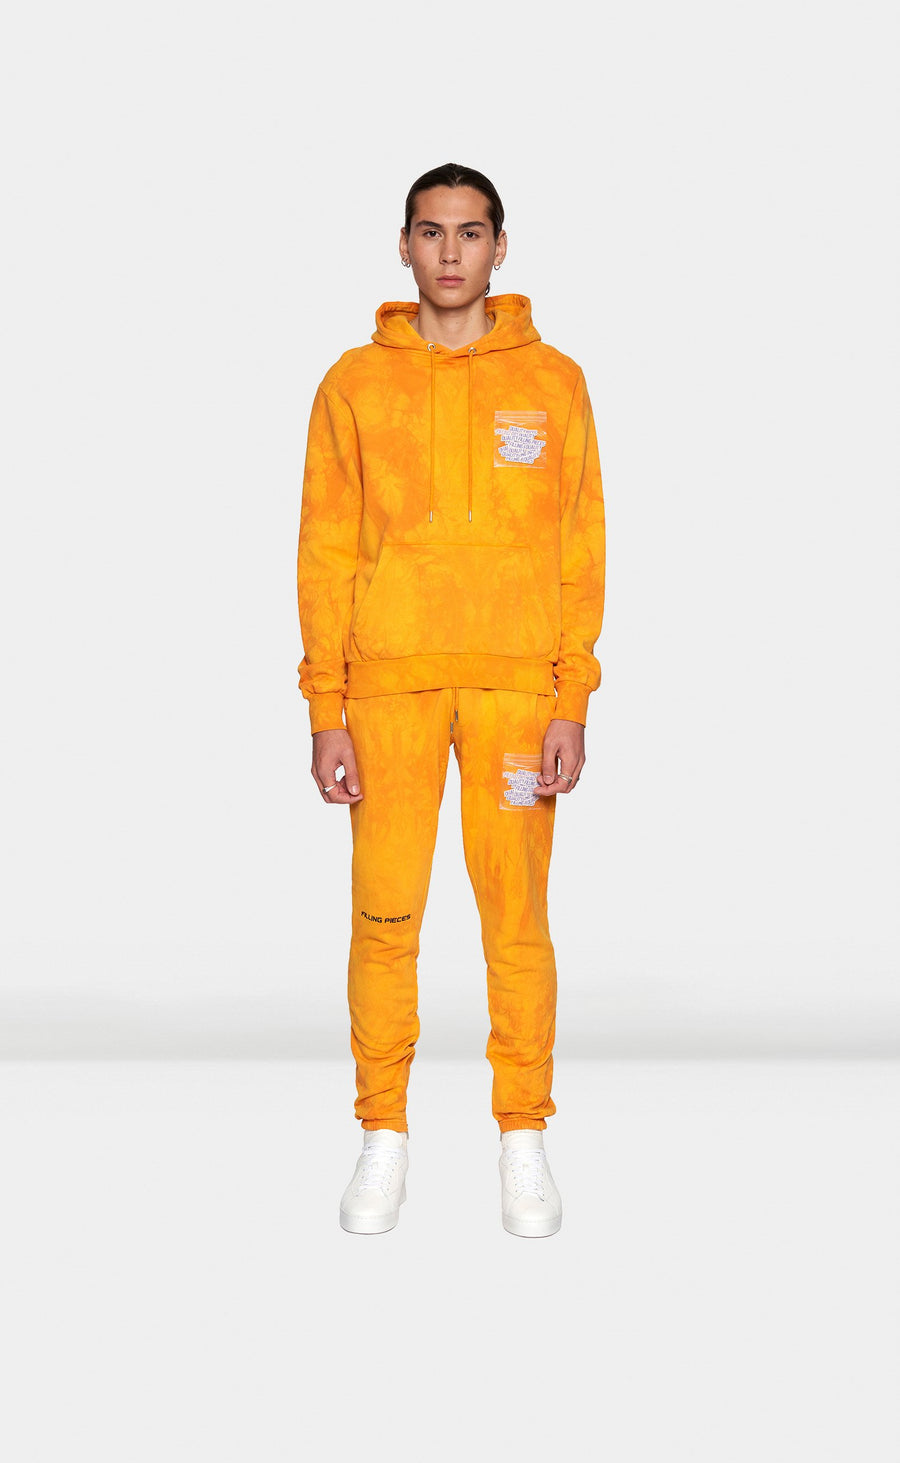 Graphic Sweatpants FP World Orange - men